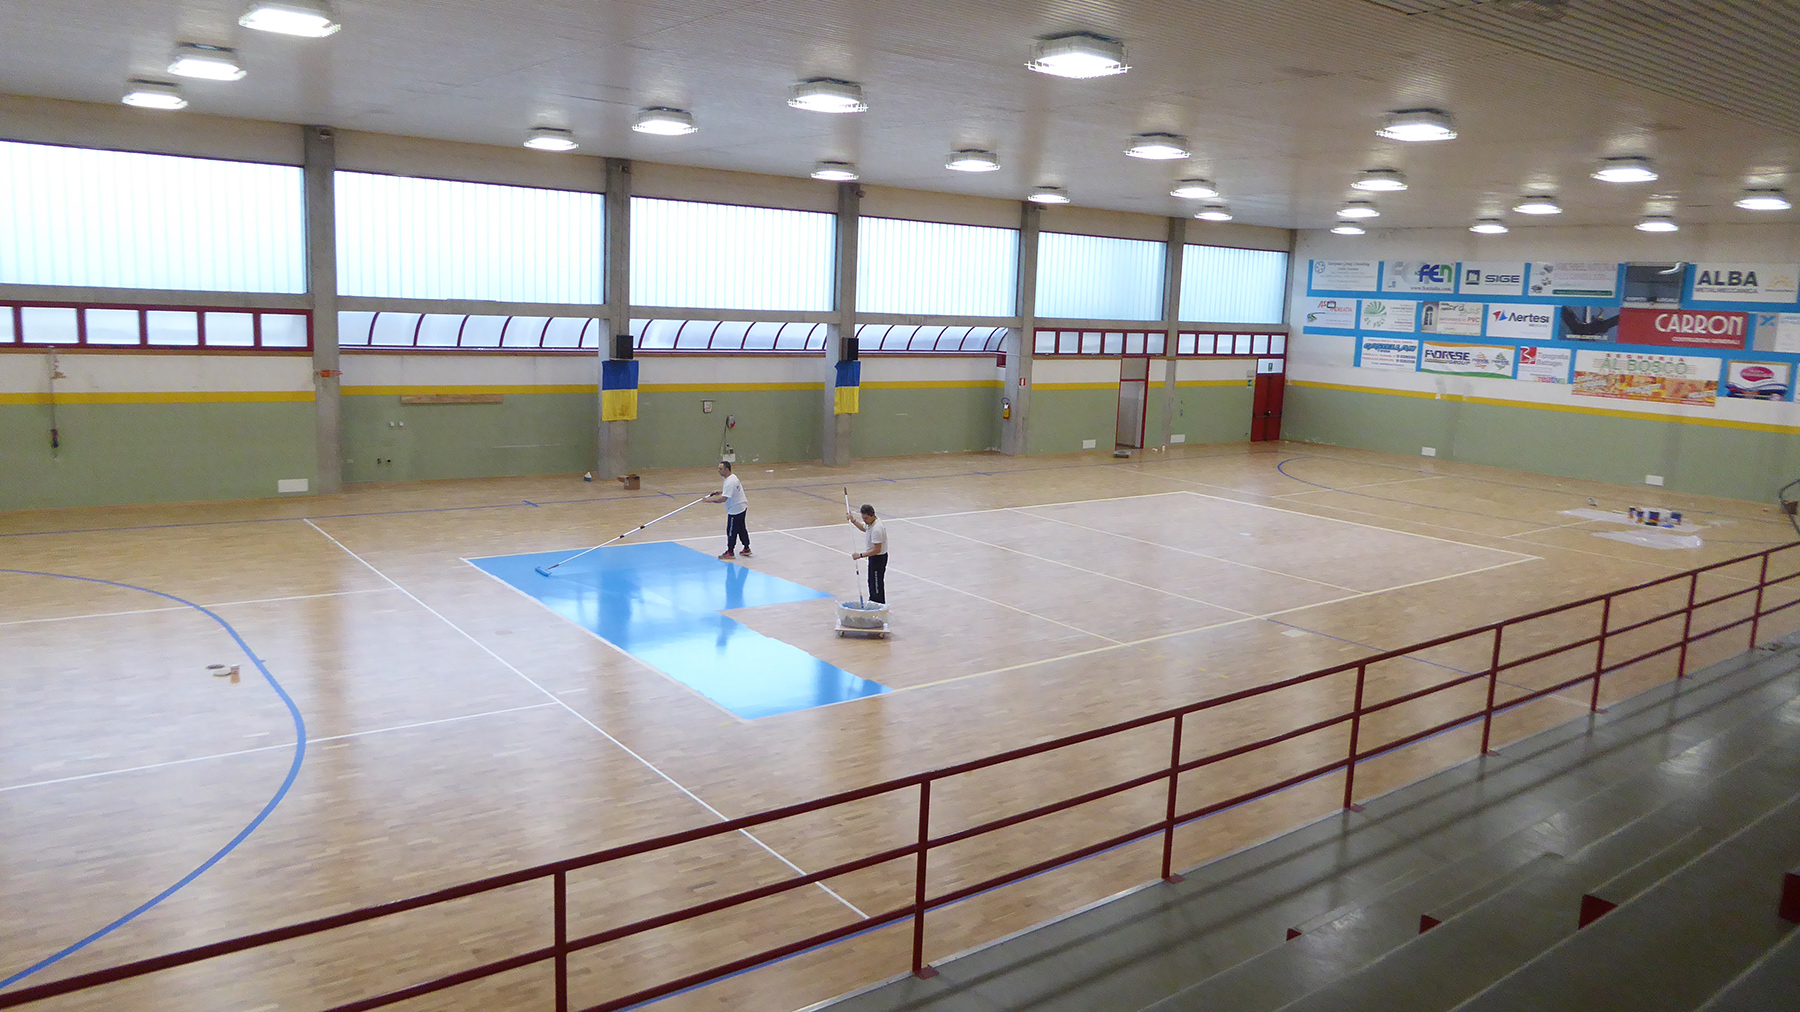 The coloring of the volleyball court